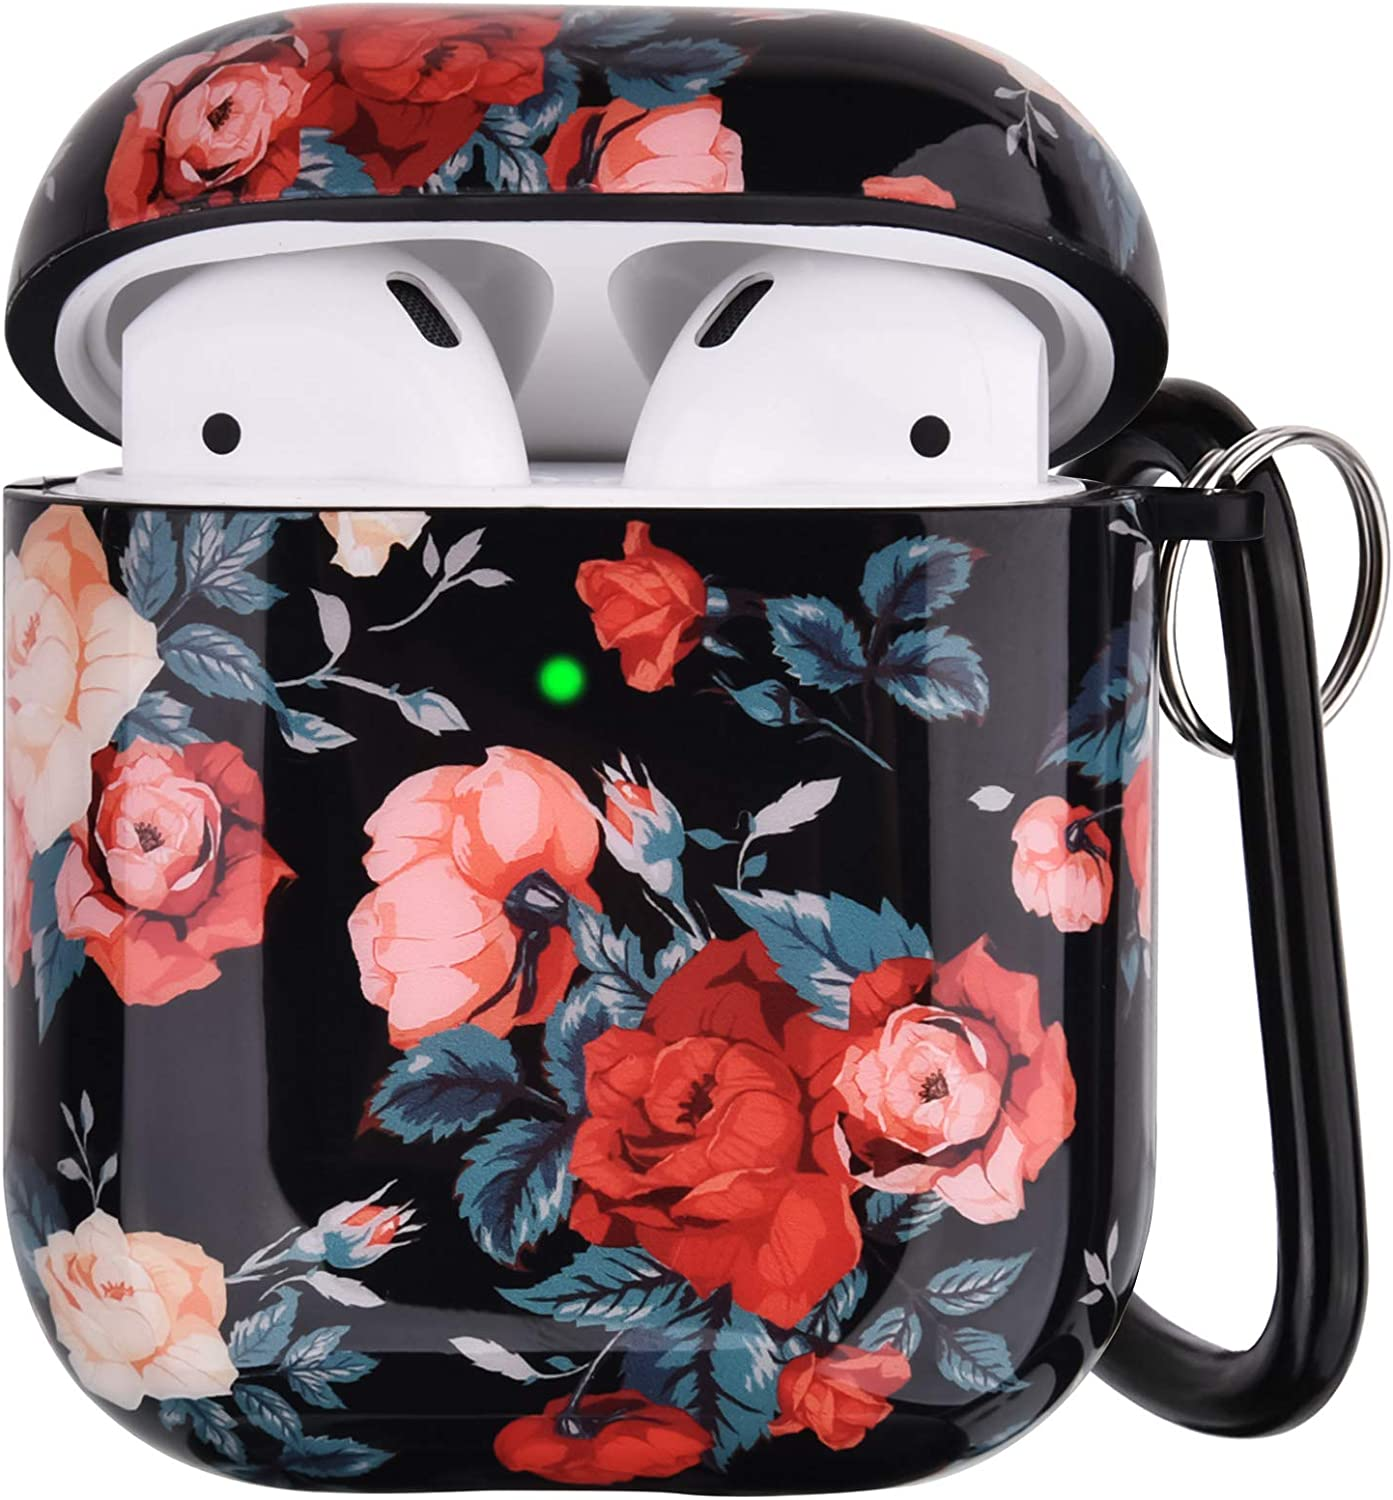 RGBWIND Airpod Case for Women and Girls,Compatible with Apple Air pod Case 2/1,Anti-Slip and Cute Rose Floral Design Cover,Hard Earbuds Accessory with Keychain